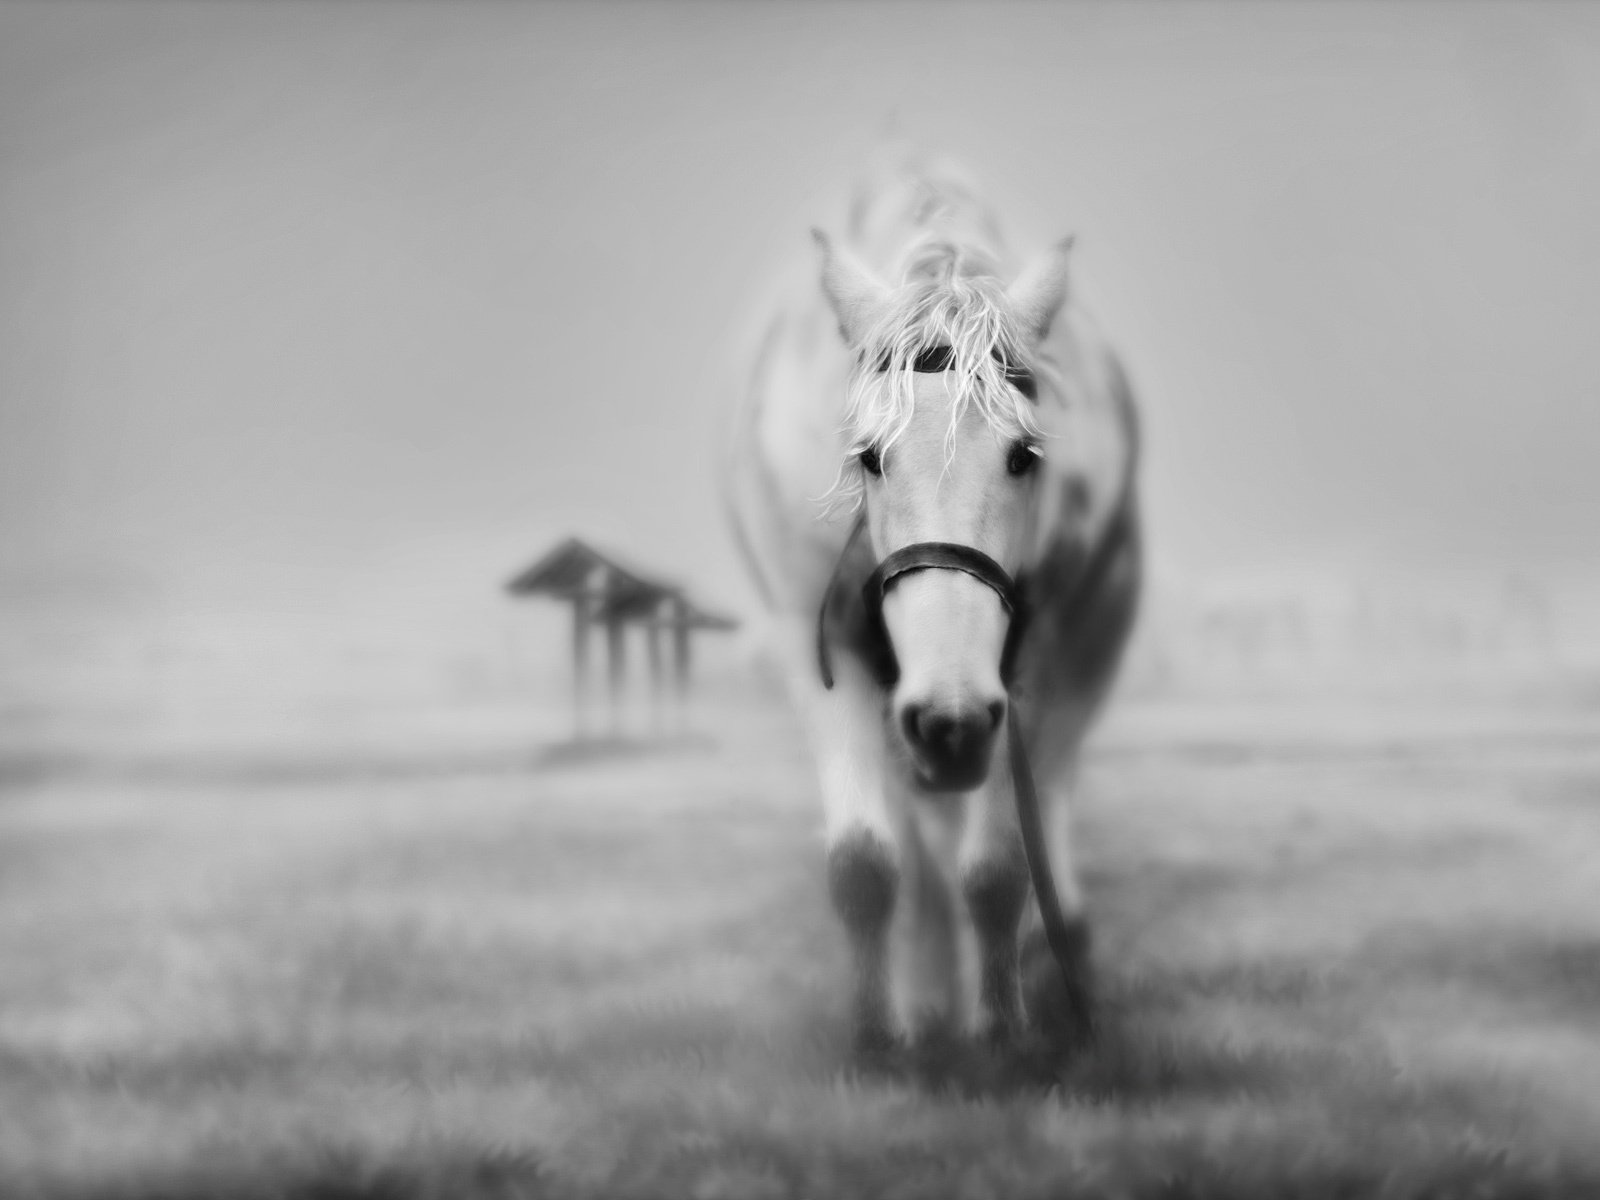 Black and white horse 1600x1200px Black and white detail horse 1600x1200